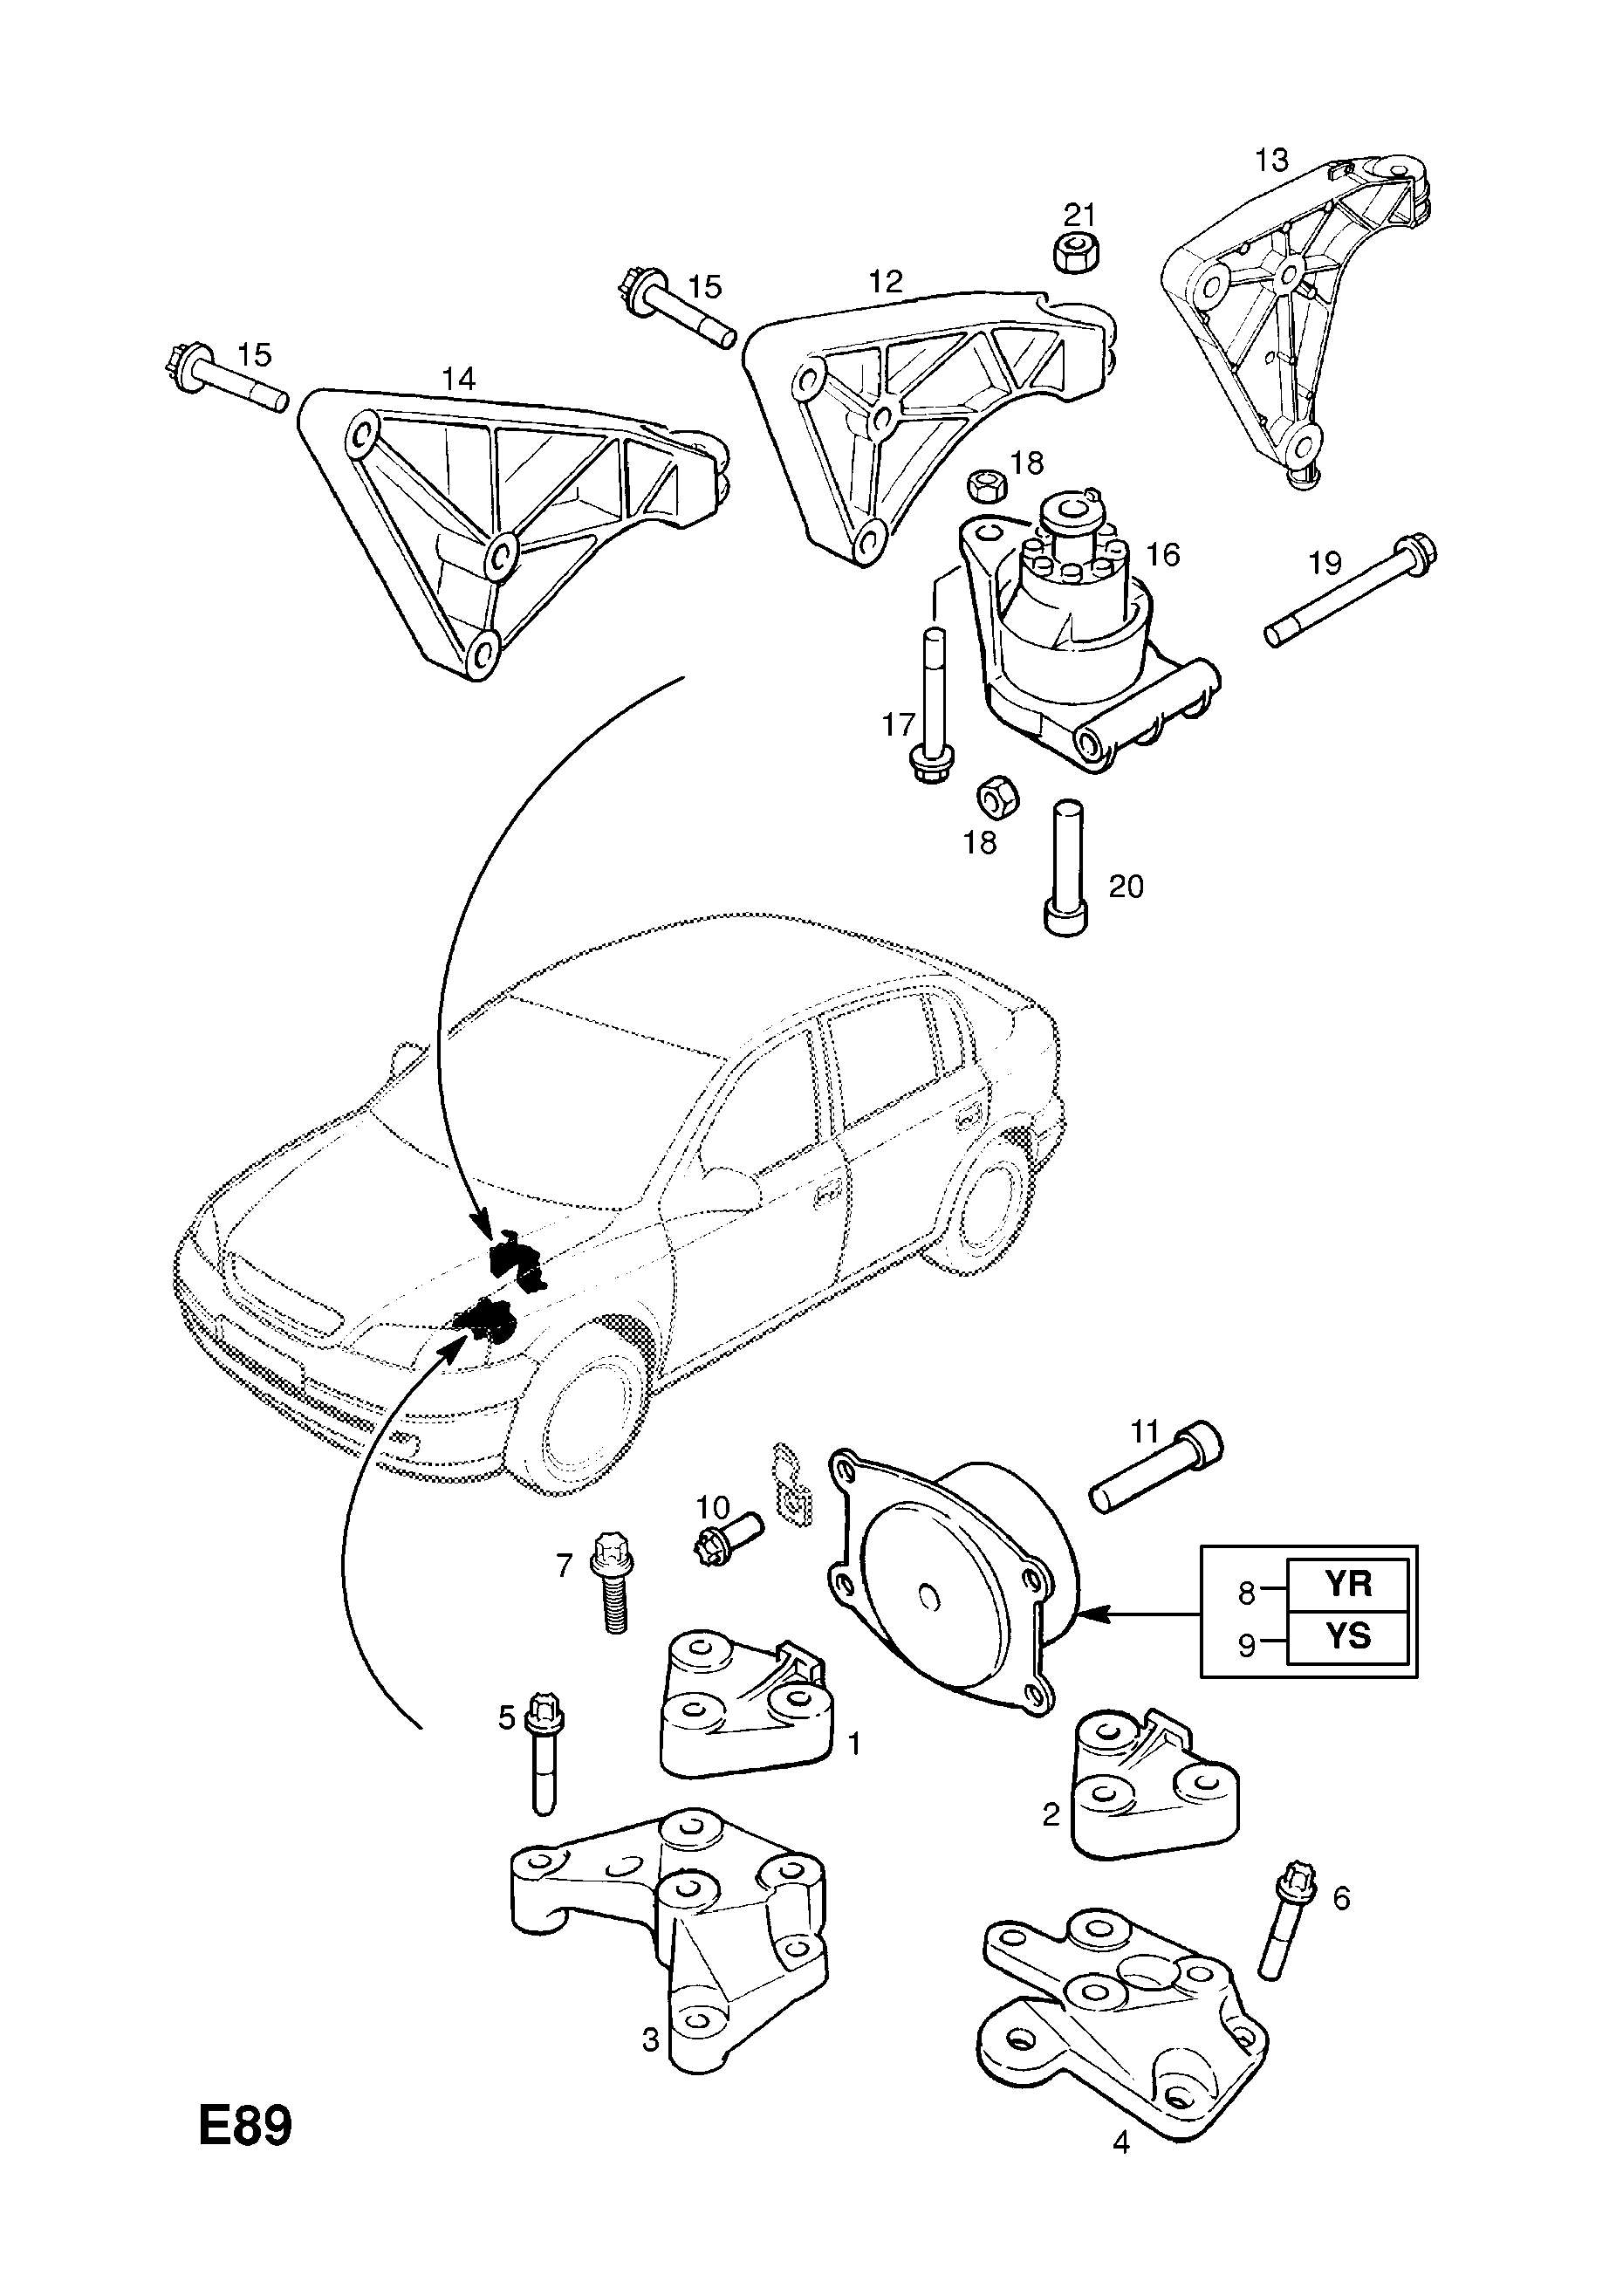 Engine Mountings Contd Rear Mounting Opel Astra G Zafira A Diagram